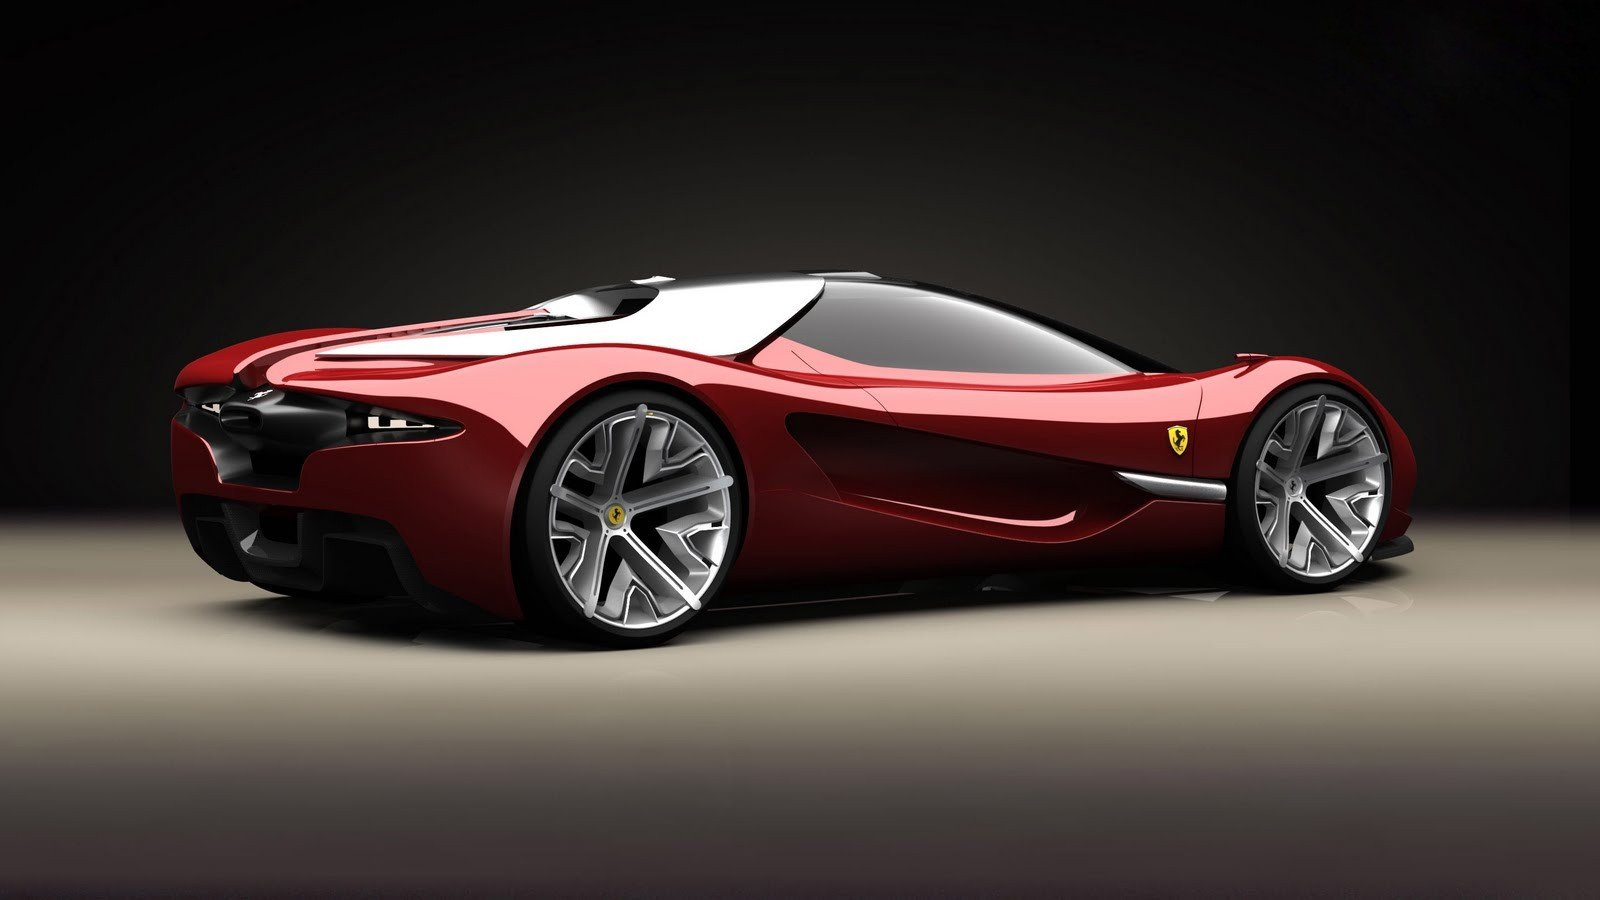 Ferrari Supercars Wallpaper 1600x900 Ferrari, Supercars, Concept, Cars ...